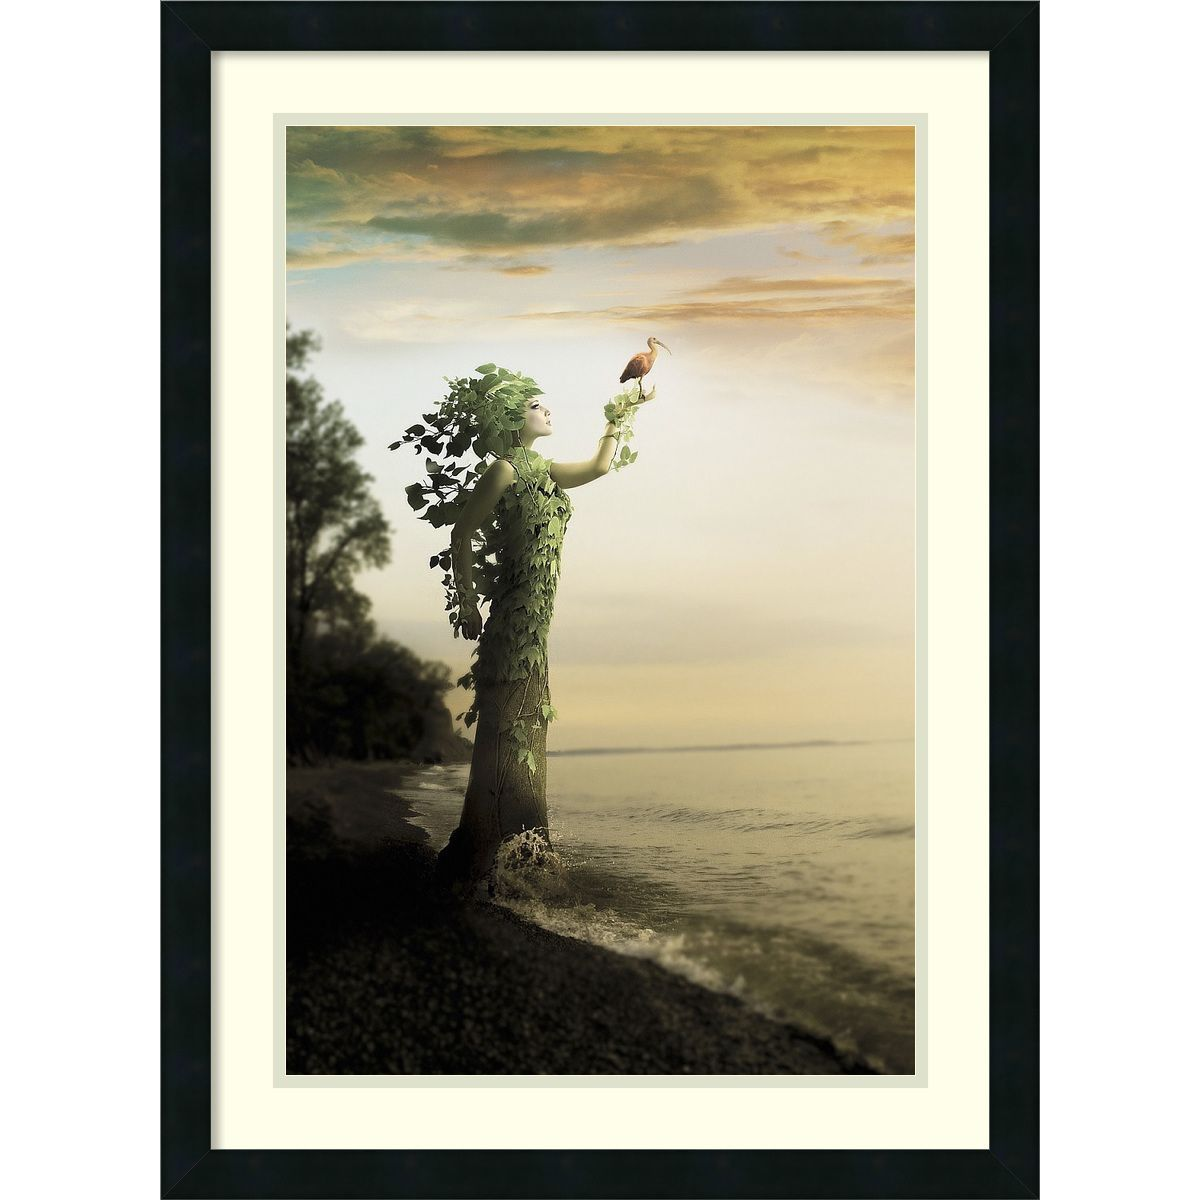 Framed Art Print 'Where the Trees Stand' by Jeff Madison 22 x 30-inch